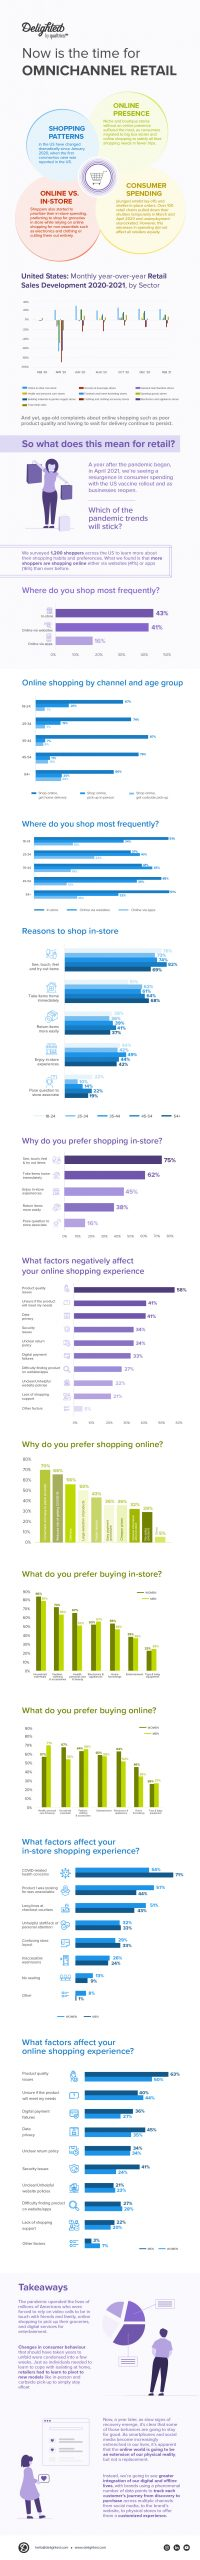 The time is now for omnichannel retail: 2021 consumer trends